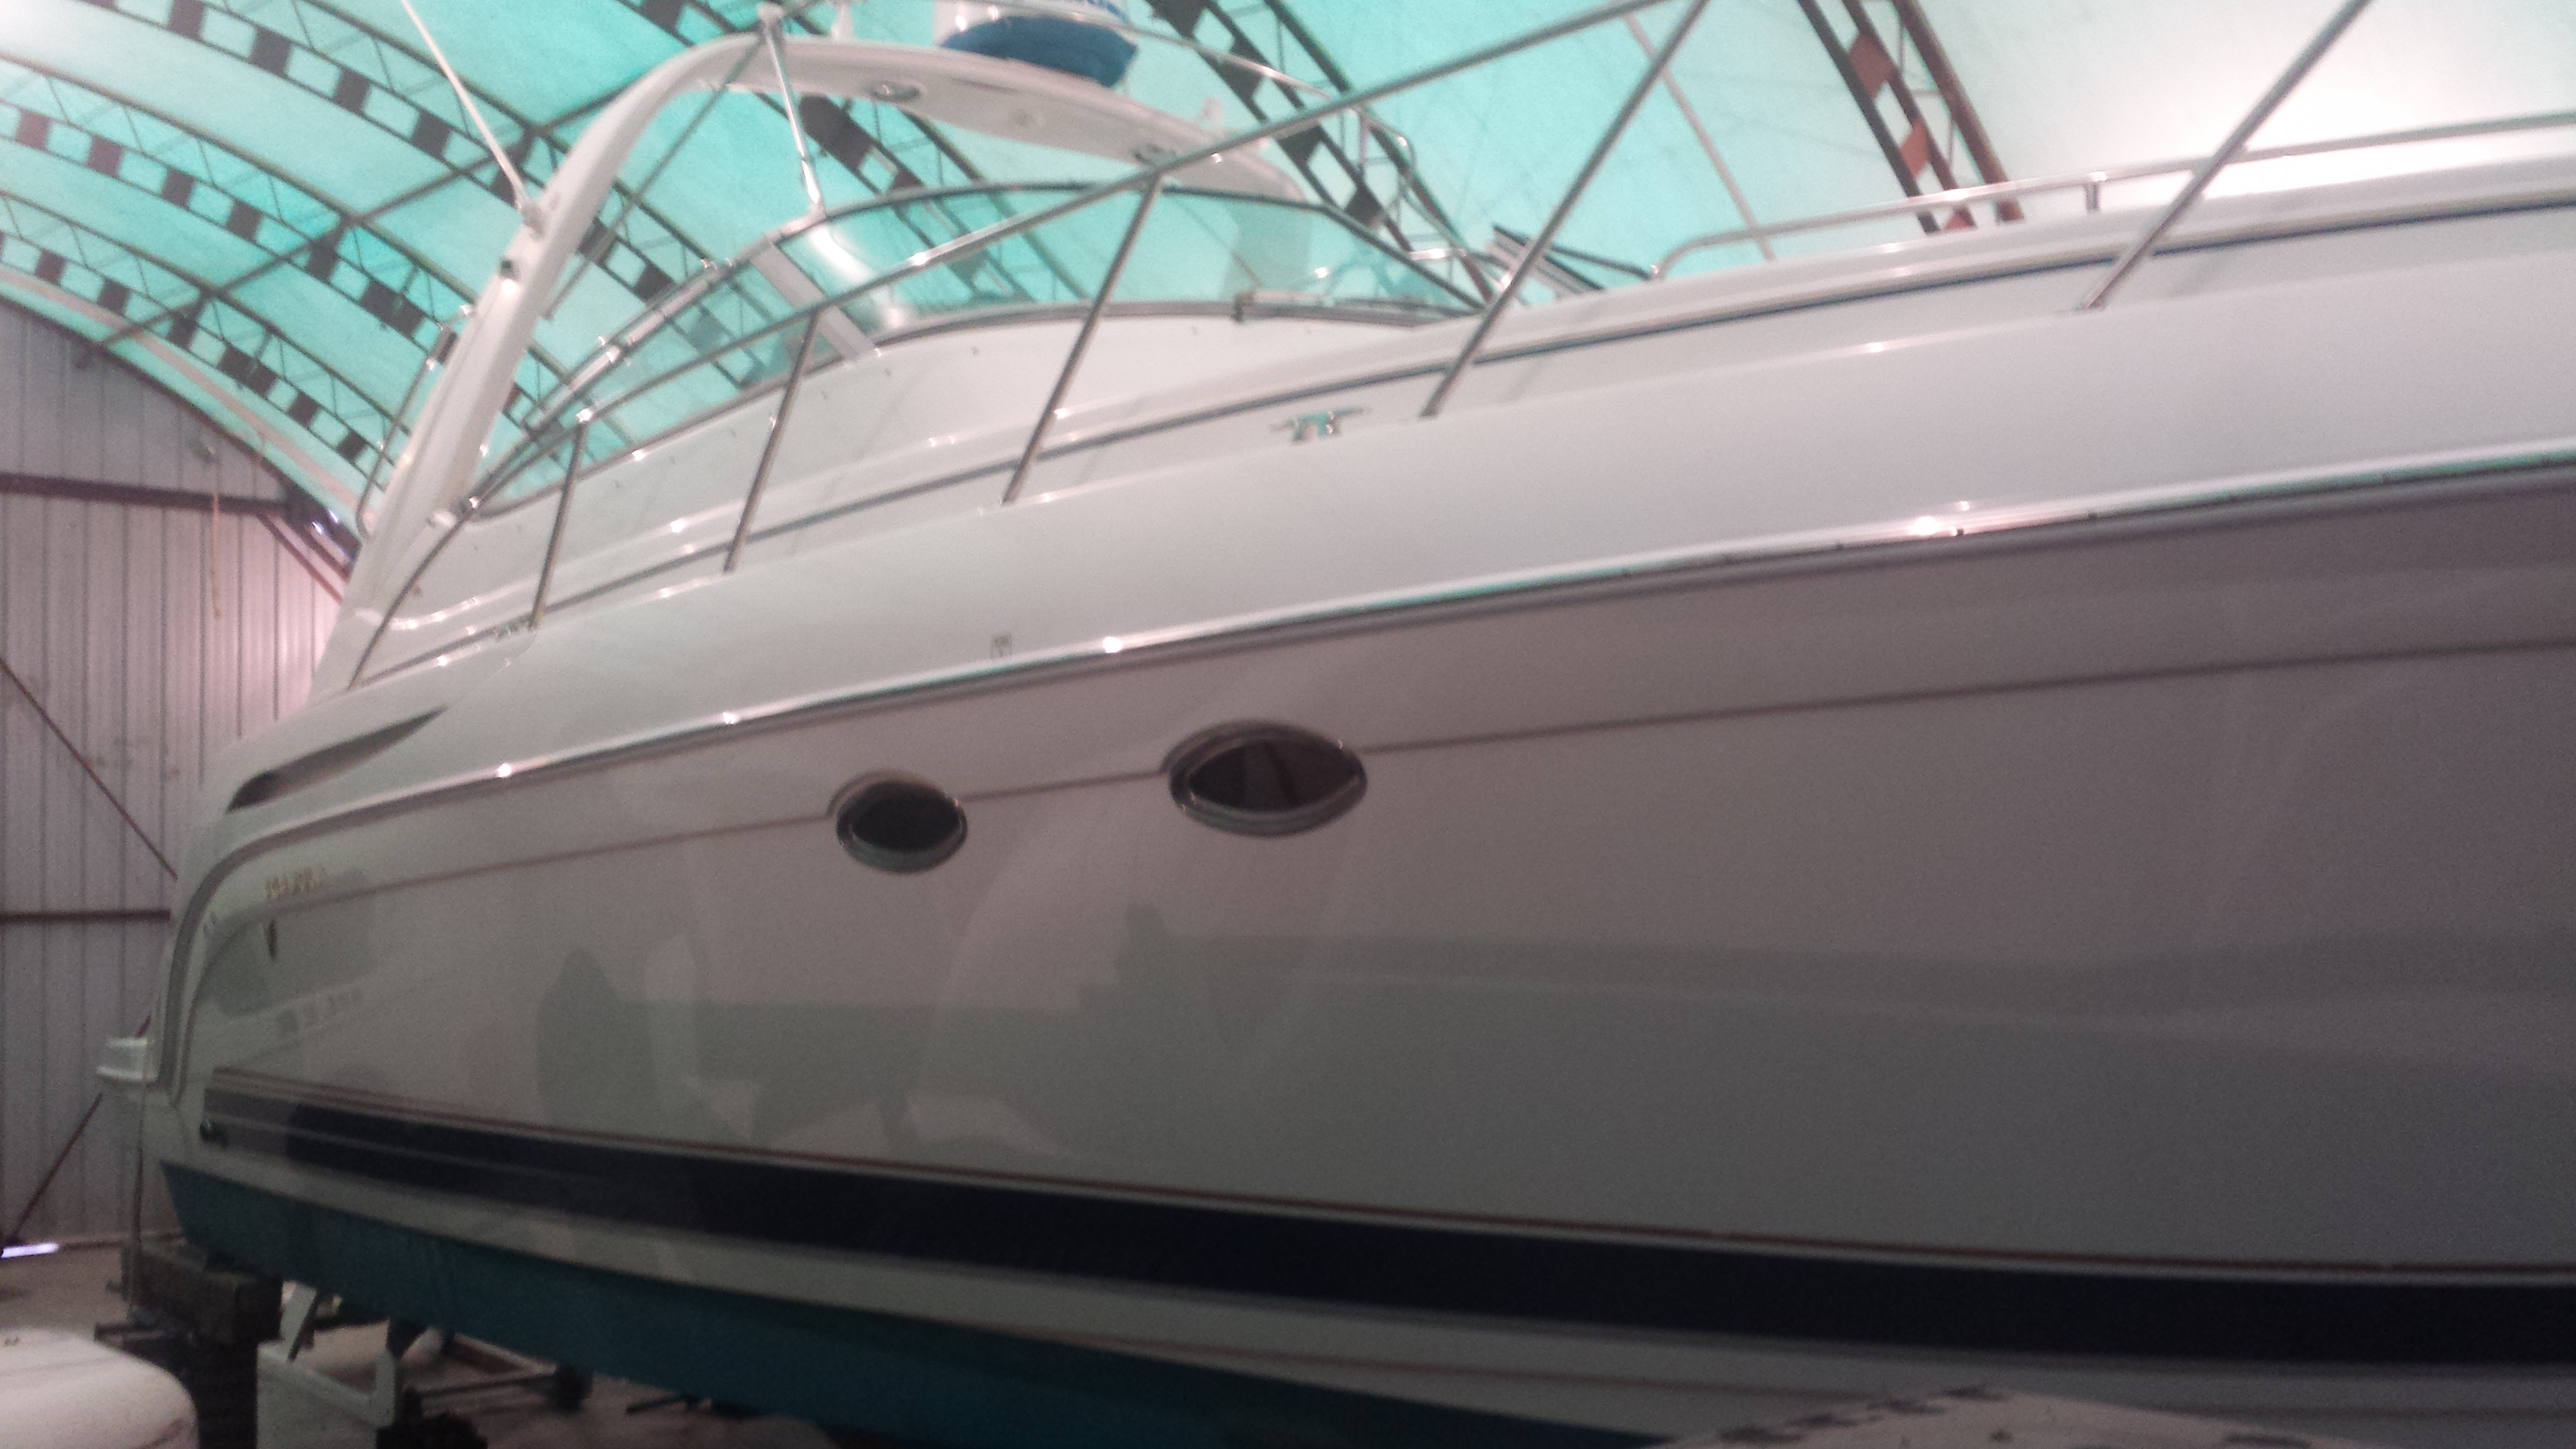 Complete boat / yacht painting and exterior refinishing at Lynwood Marina in North Vancouver for a Richmond BC customer.